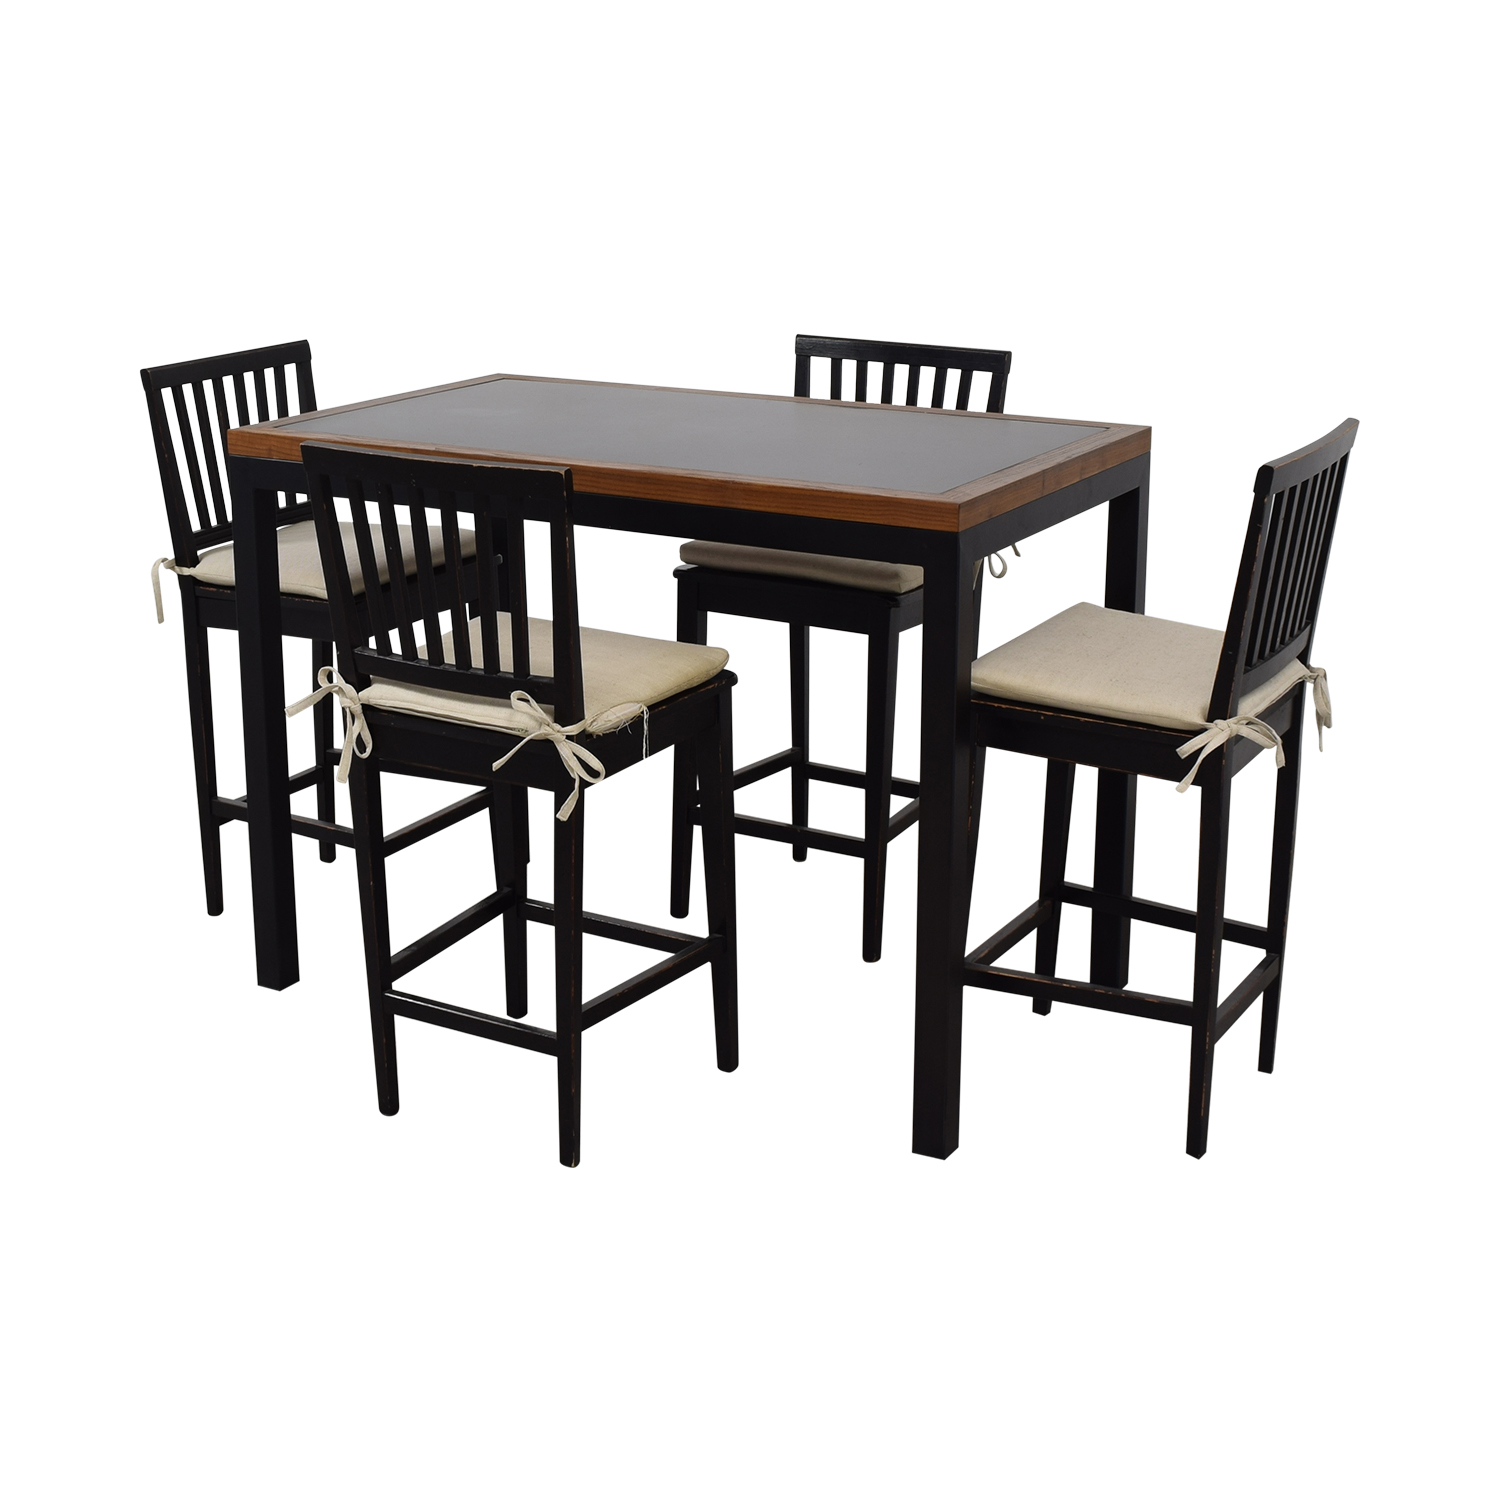 shop Crate & Barrel Parsons Counter High Dining Table Crate & Barrel